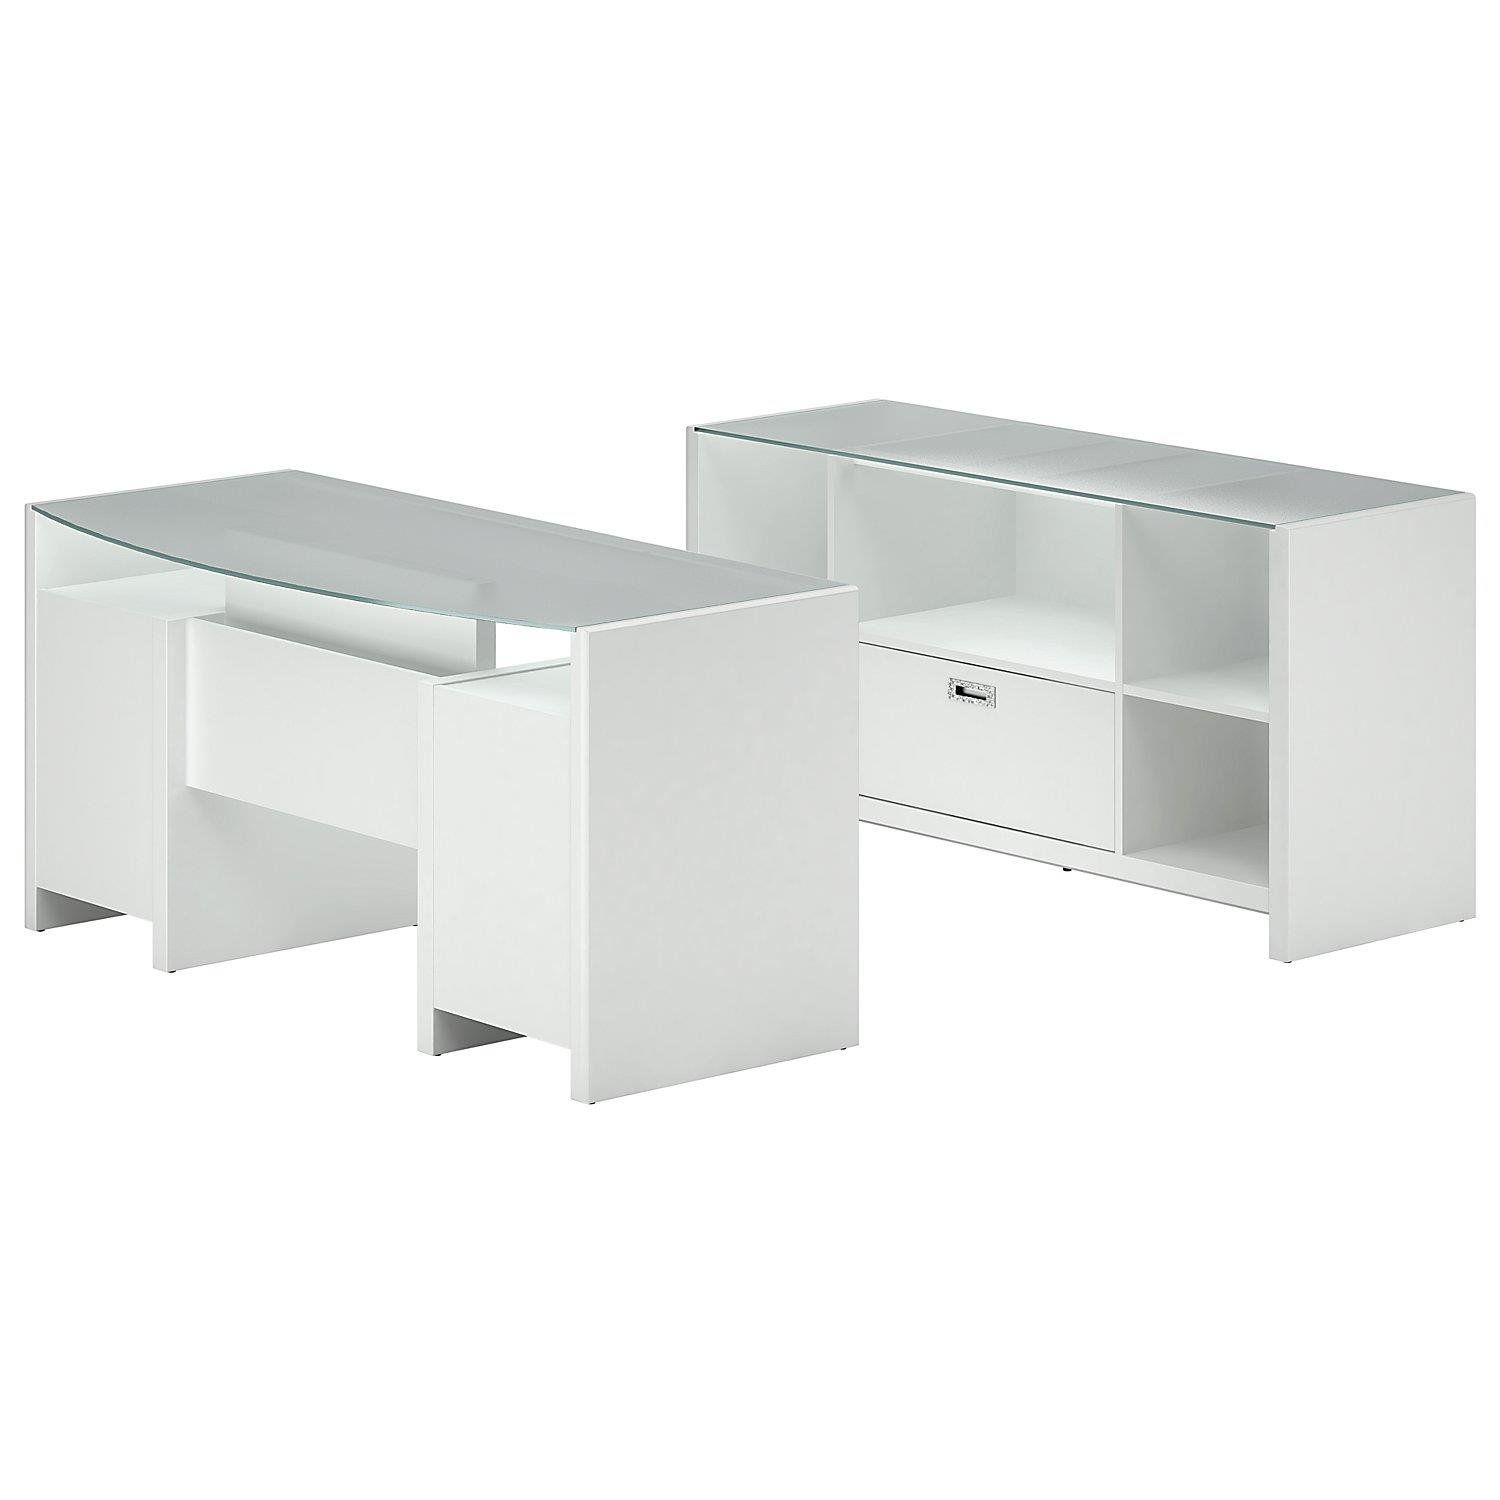 Delicieux Kathy Ireland Office By Bush Furniture Bow Front Desk With Credenza,  Plumeria White